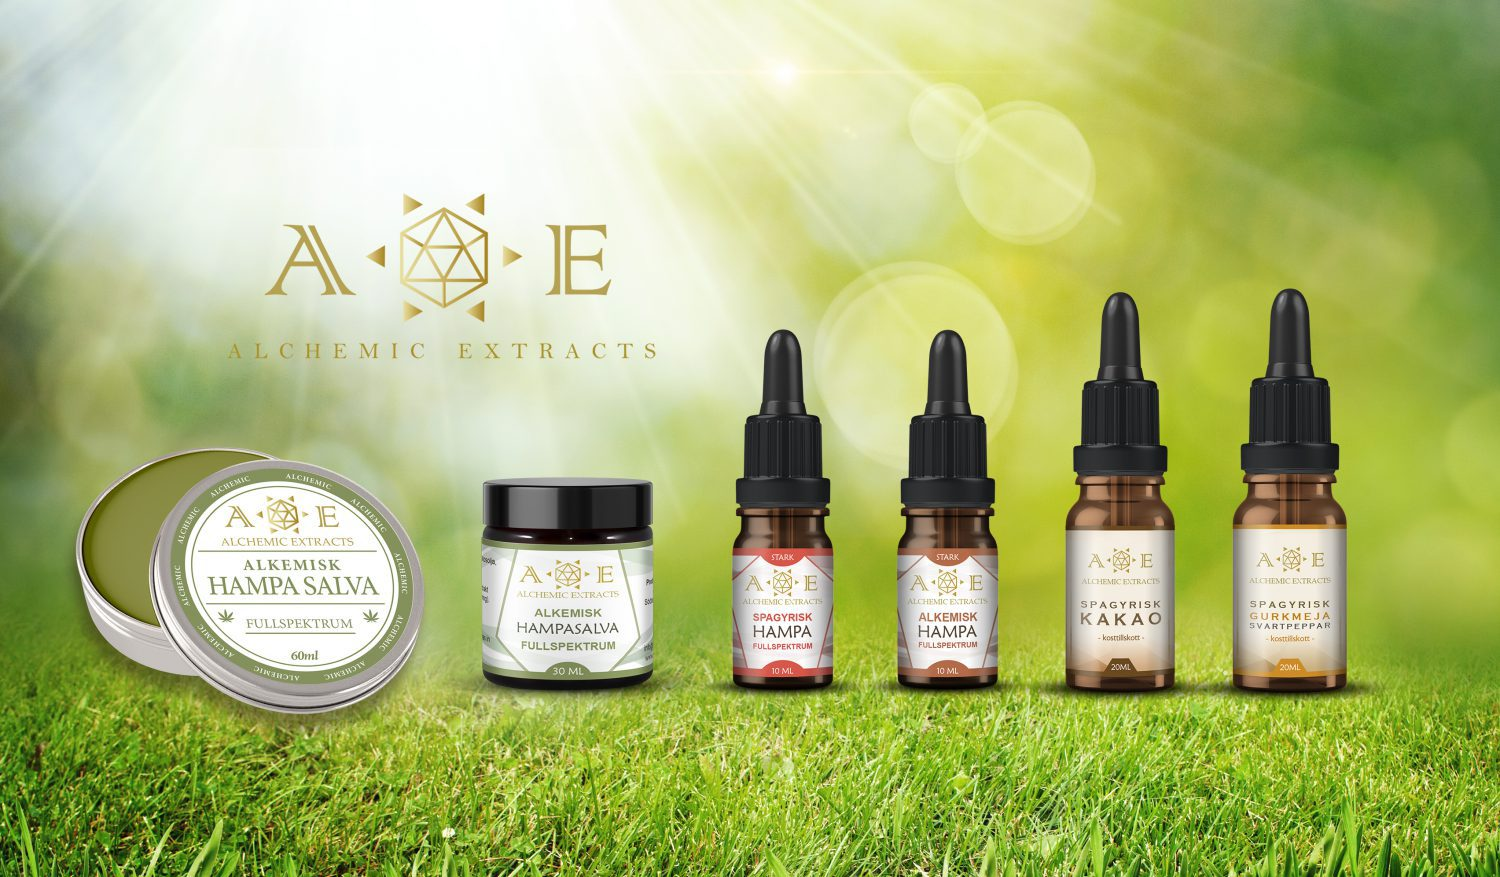 Alchemic Extracts AB